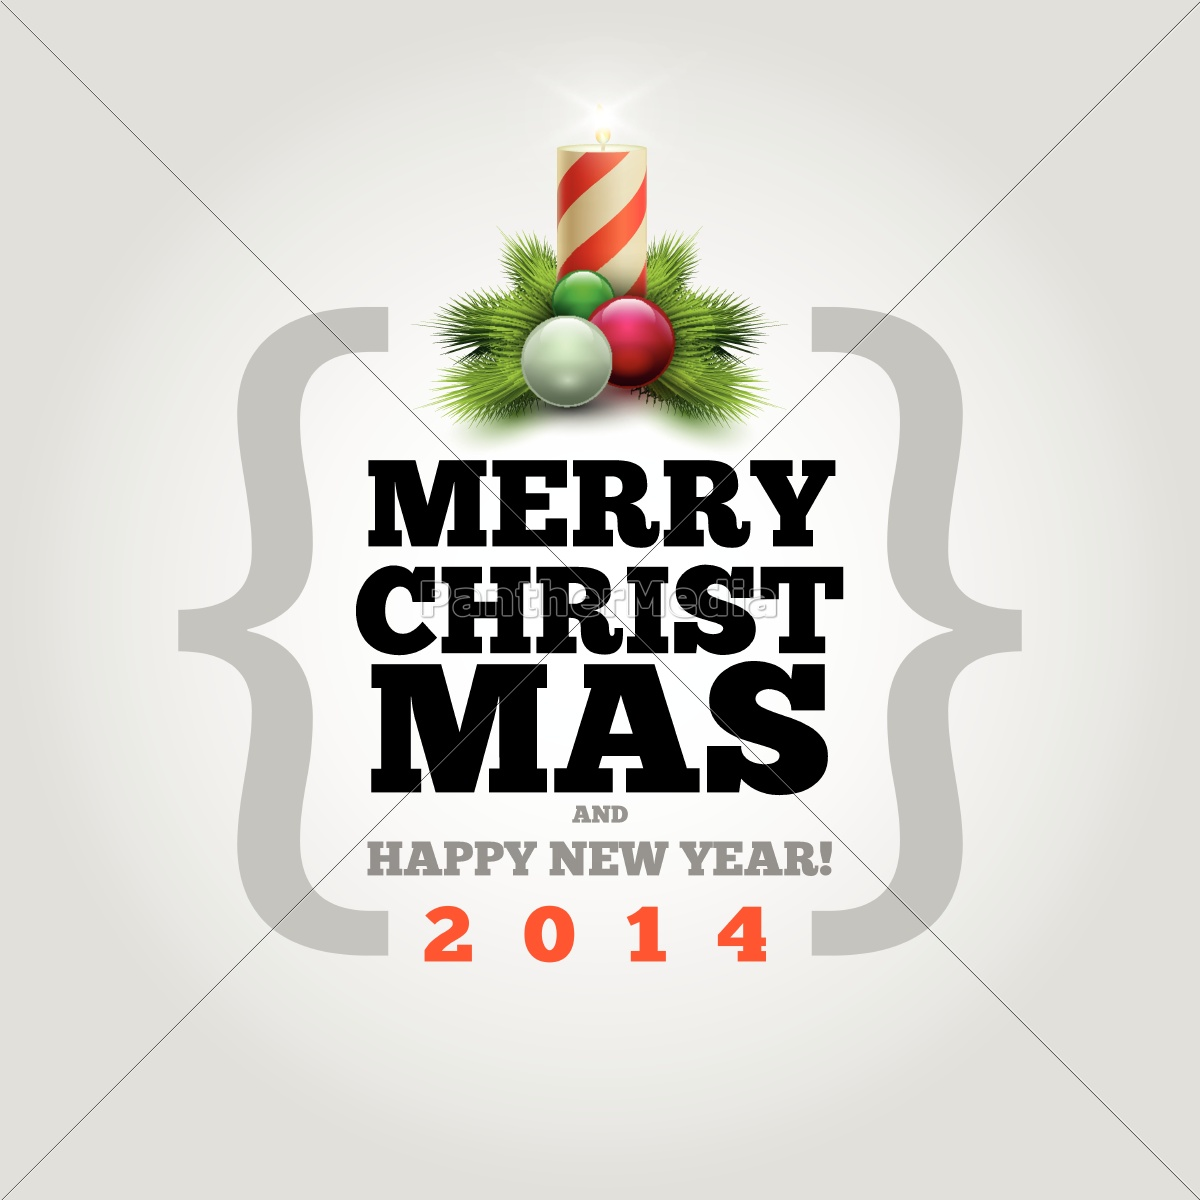 greeting, card, new year, christmas, vector, xmas - 10056284